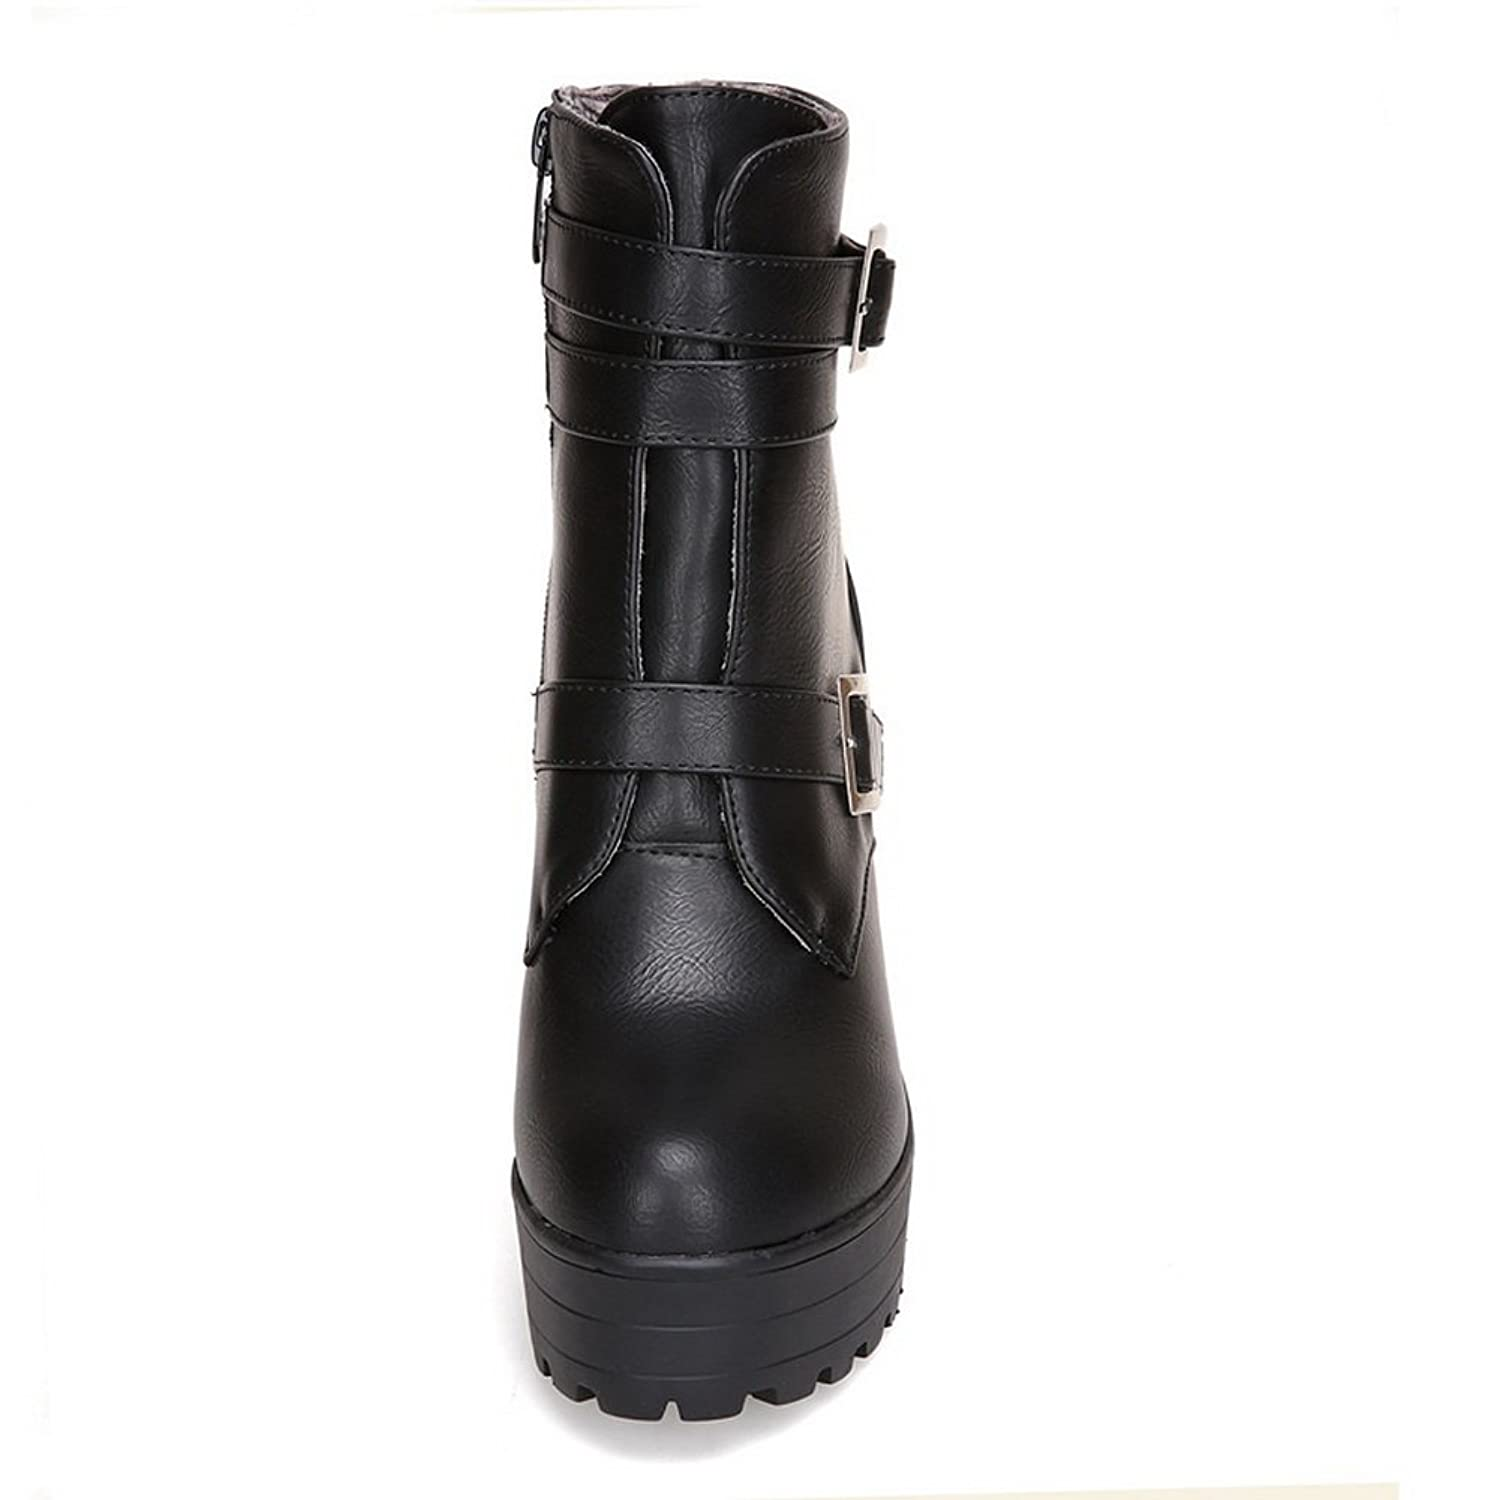 1TO9 Womens Fashion Cone-Shape Heel Buckle Zipper Imitated Leather Boots